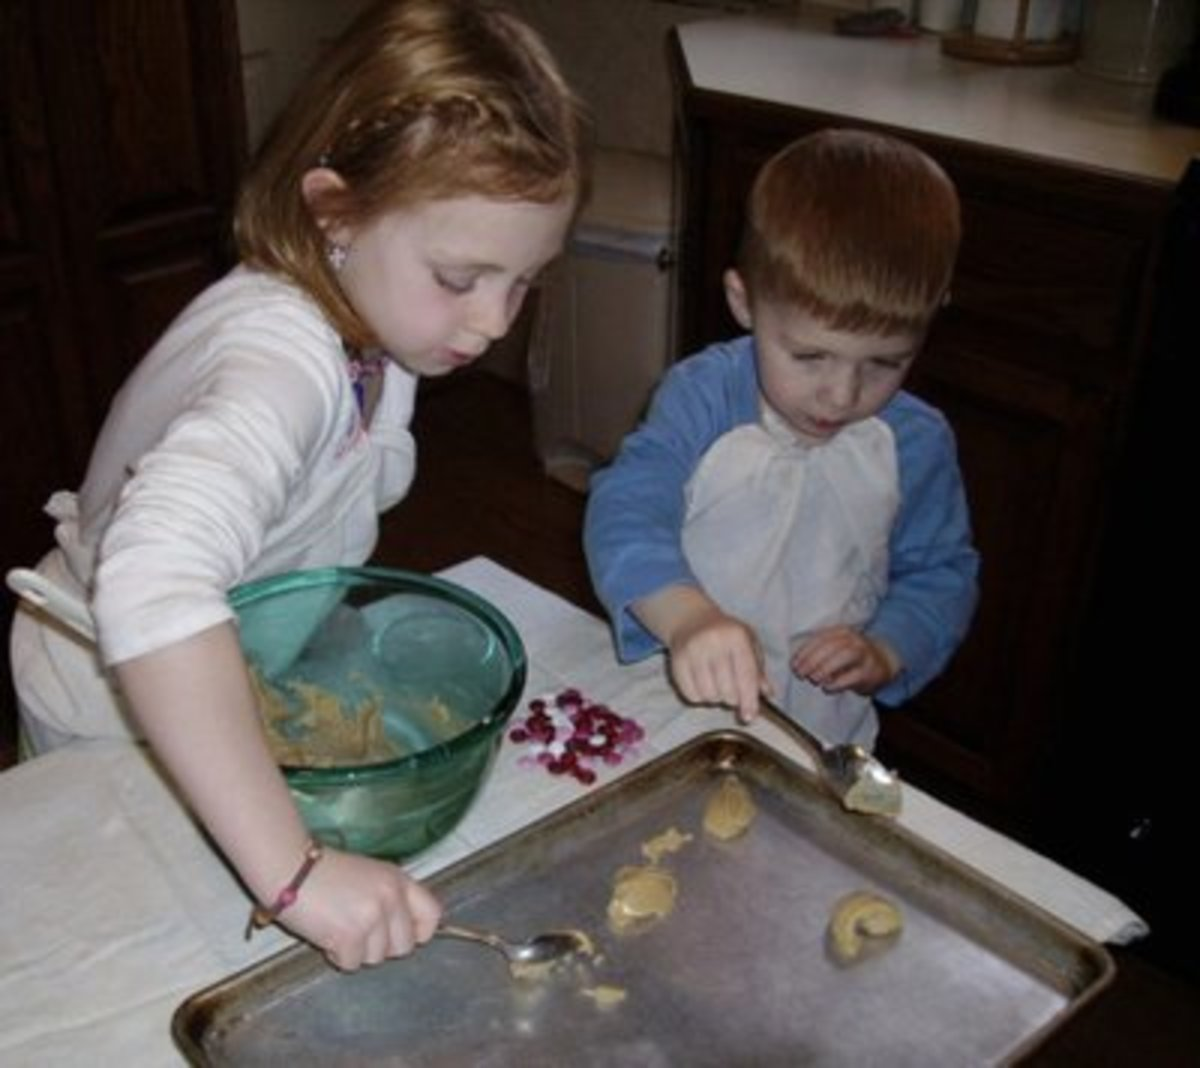 Put spoonsful of dough on the cookie sheet.